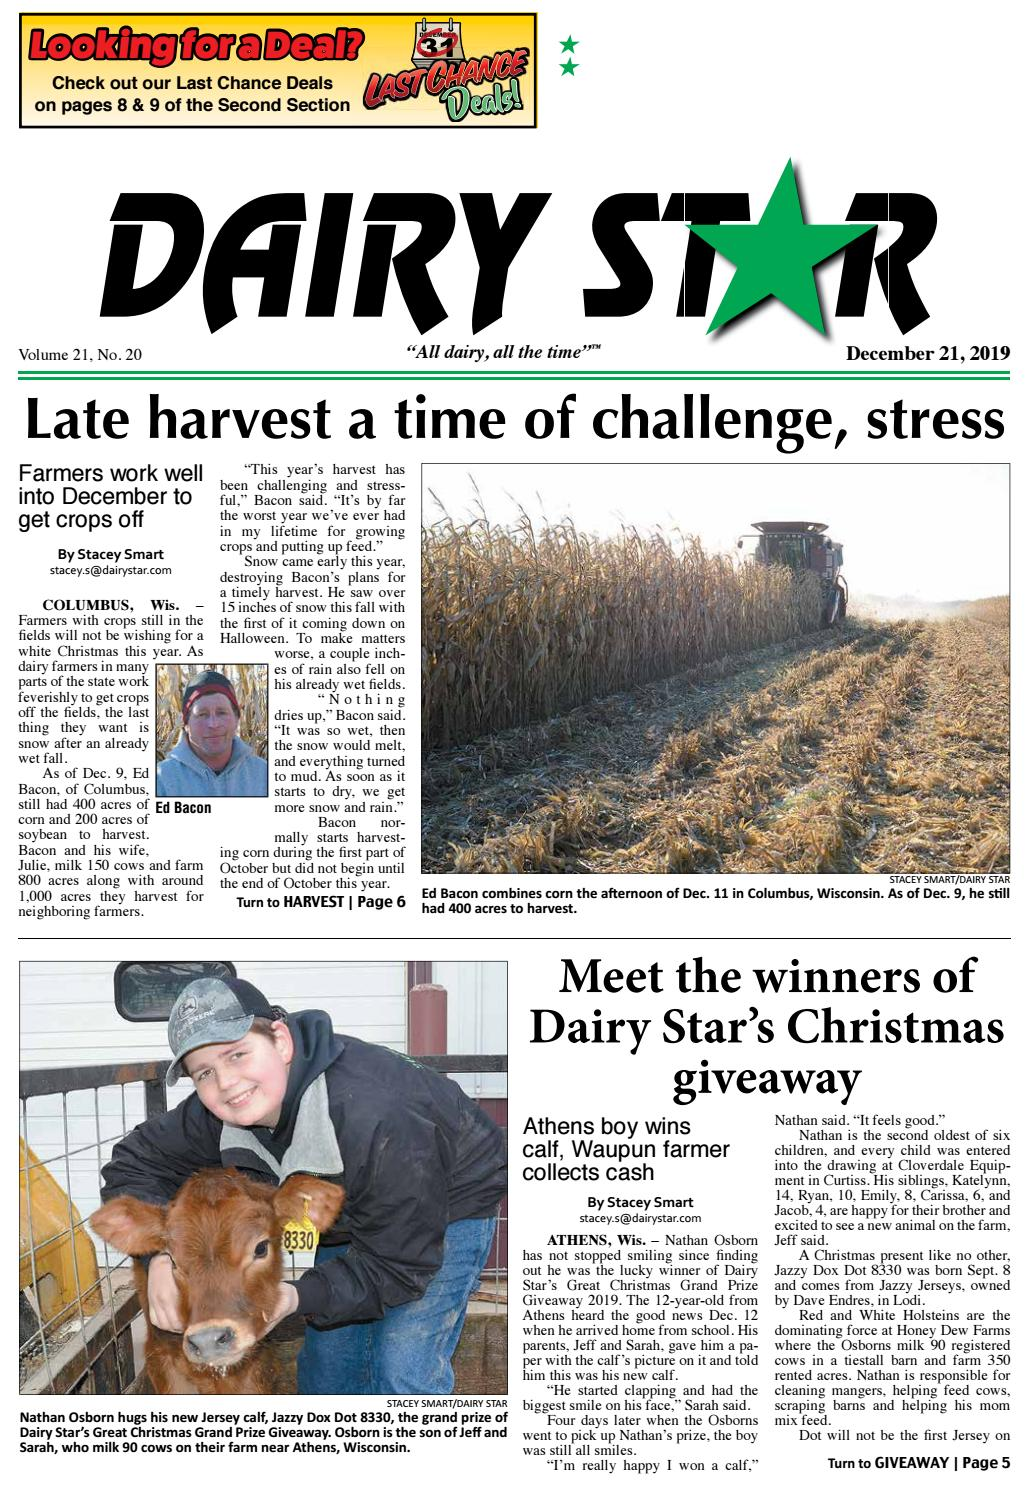 Garden View Christmas Party December 21 2020 In Calumey Michigan December 21, 2019 Dairy Star   Zone 2 by Dairy Star   issuu